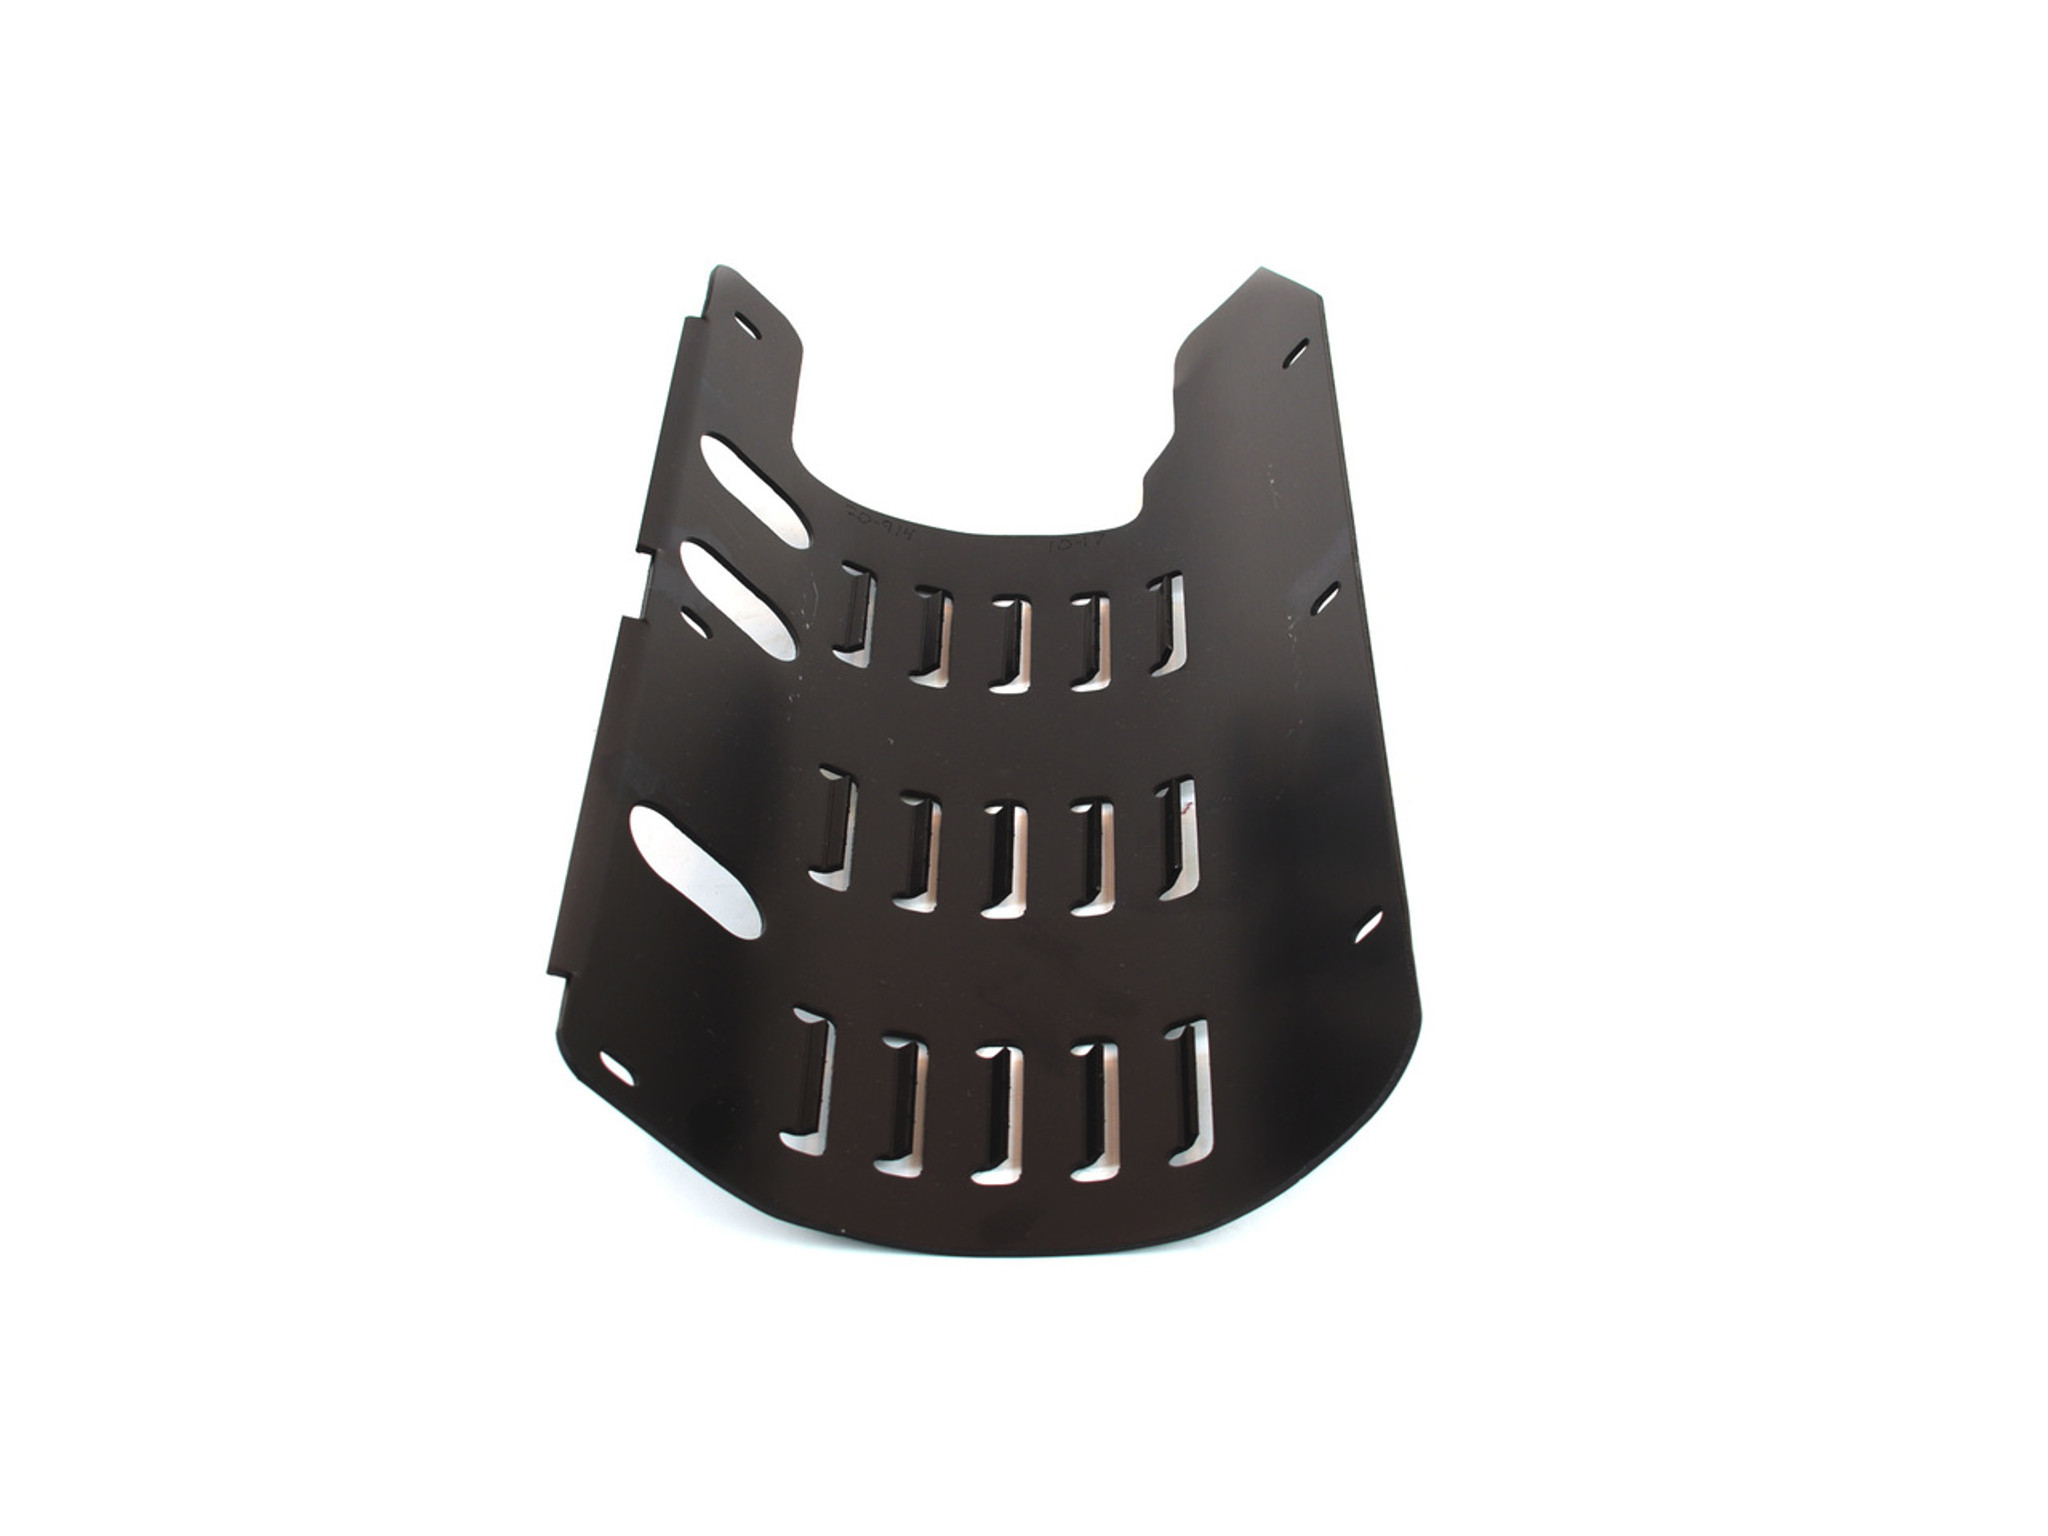 20-914 Windage Tray Small Block Chevy Louvered For In Pan Installation